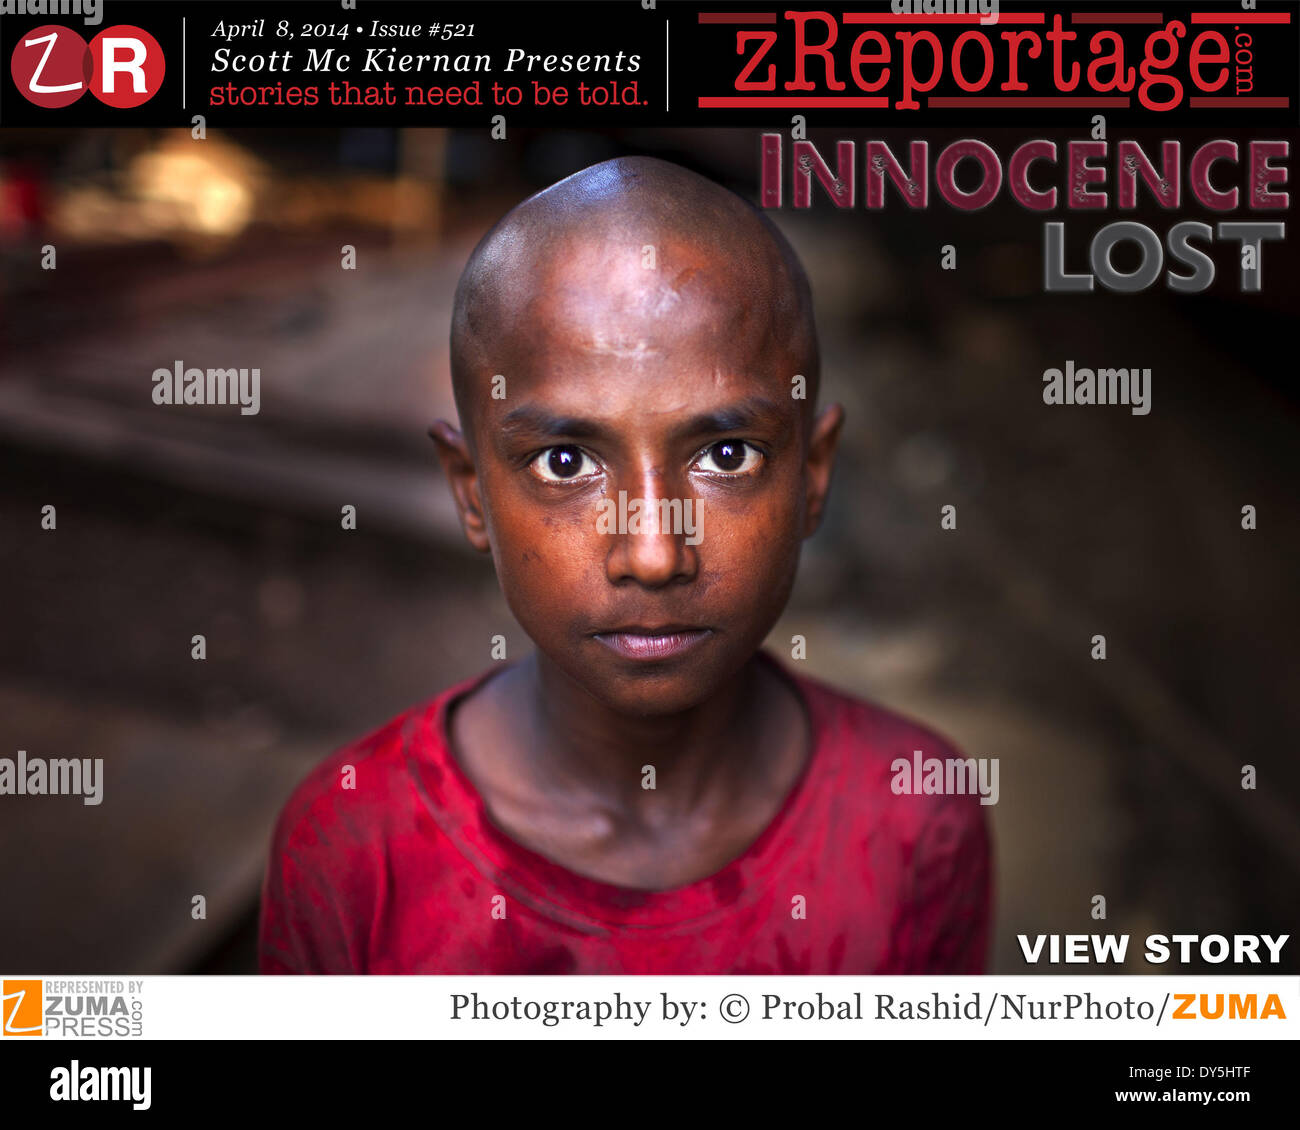 zReportage.com Story of the Week # 521 - Innocence Lost - Launched April 8, 2014 - Full multimedia experience: audio, Stock Photo